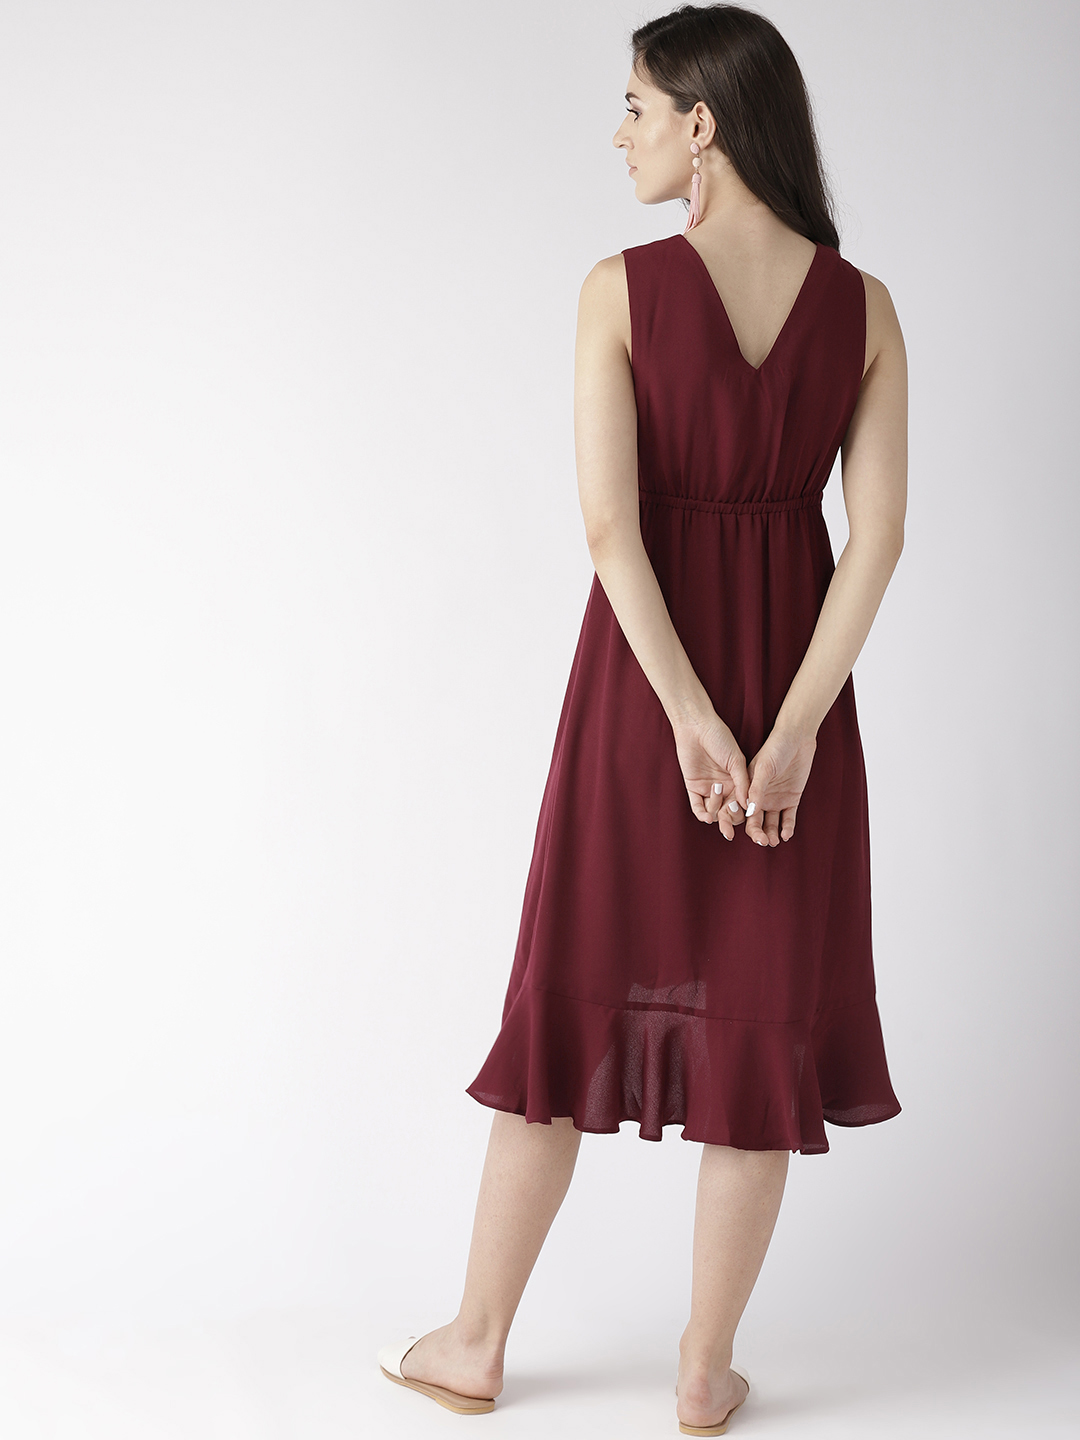 Dresses-Twirling In The Frill Midi Dress3